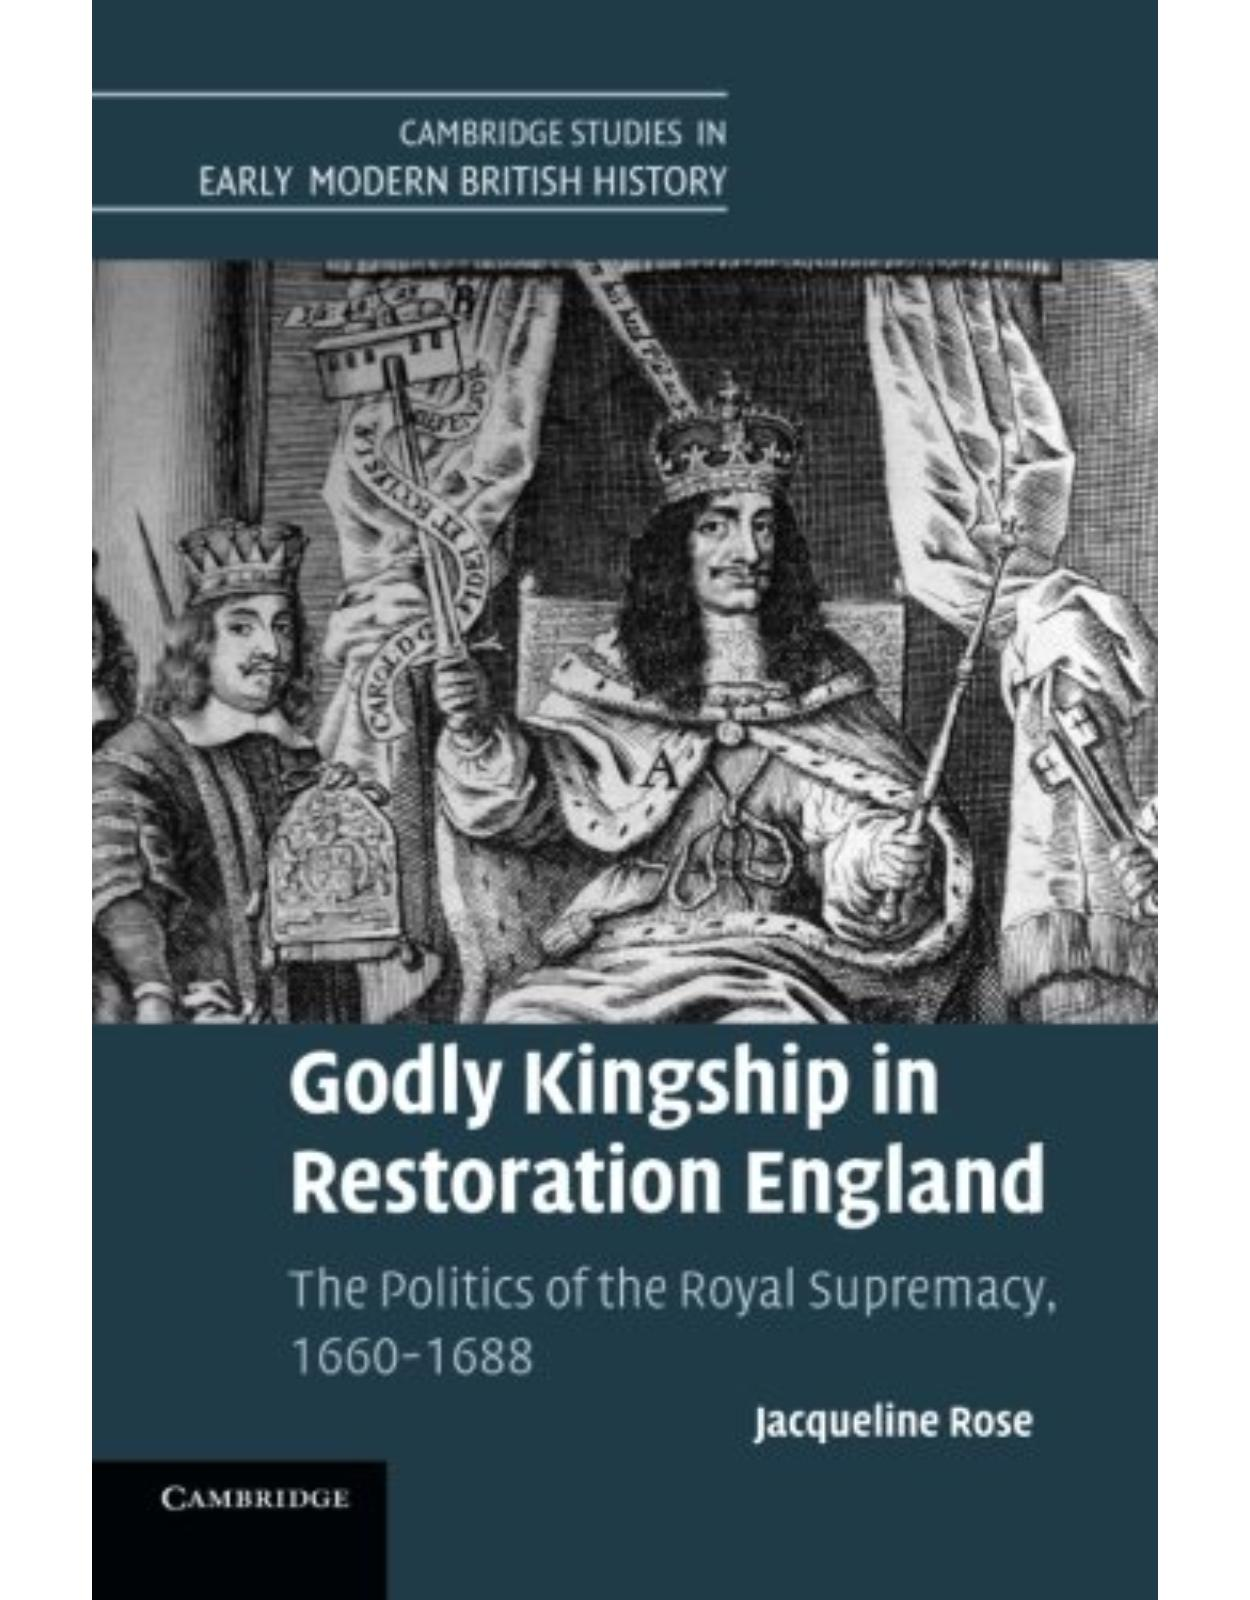 Godly Kingship in Restoration England: The Politics of The Royal Supremacy, 1660-1688 (Cambridge Studies in Early Modern British History)